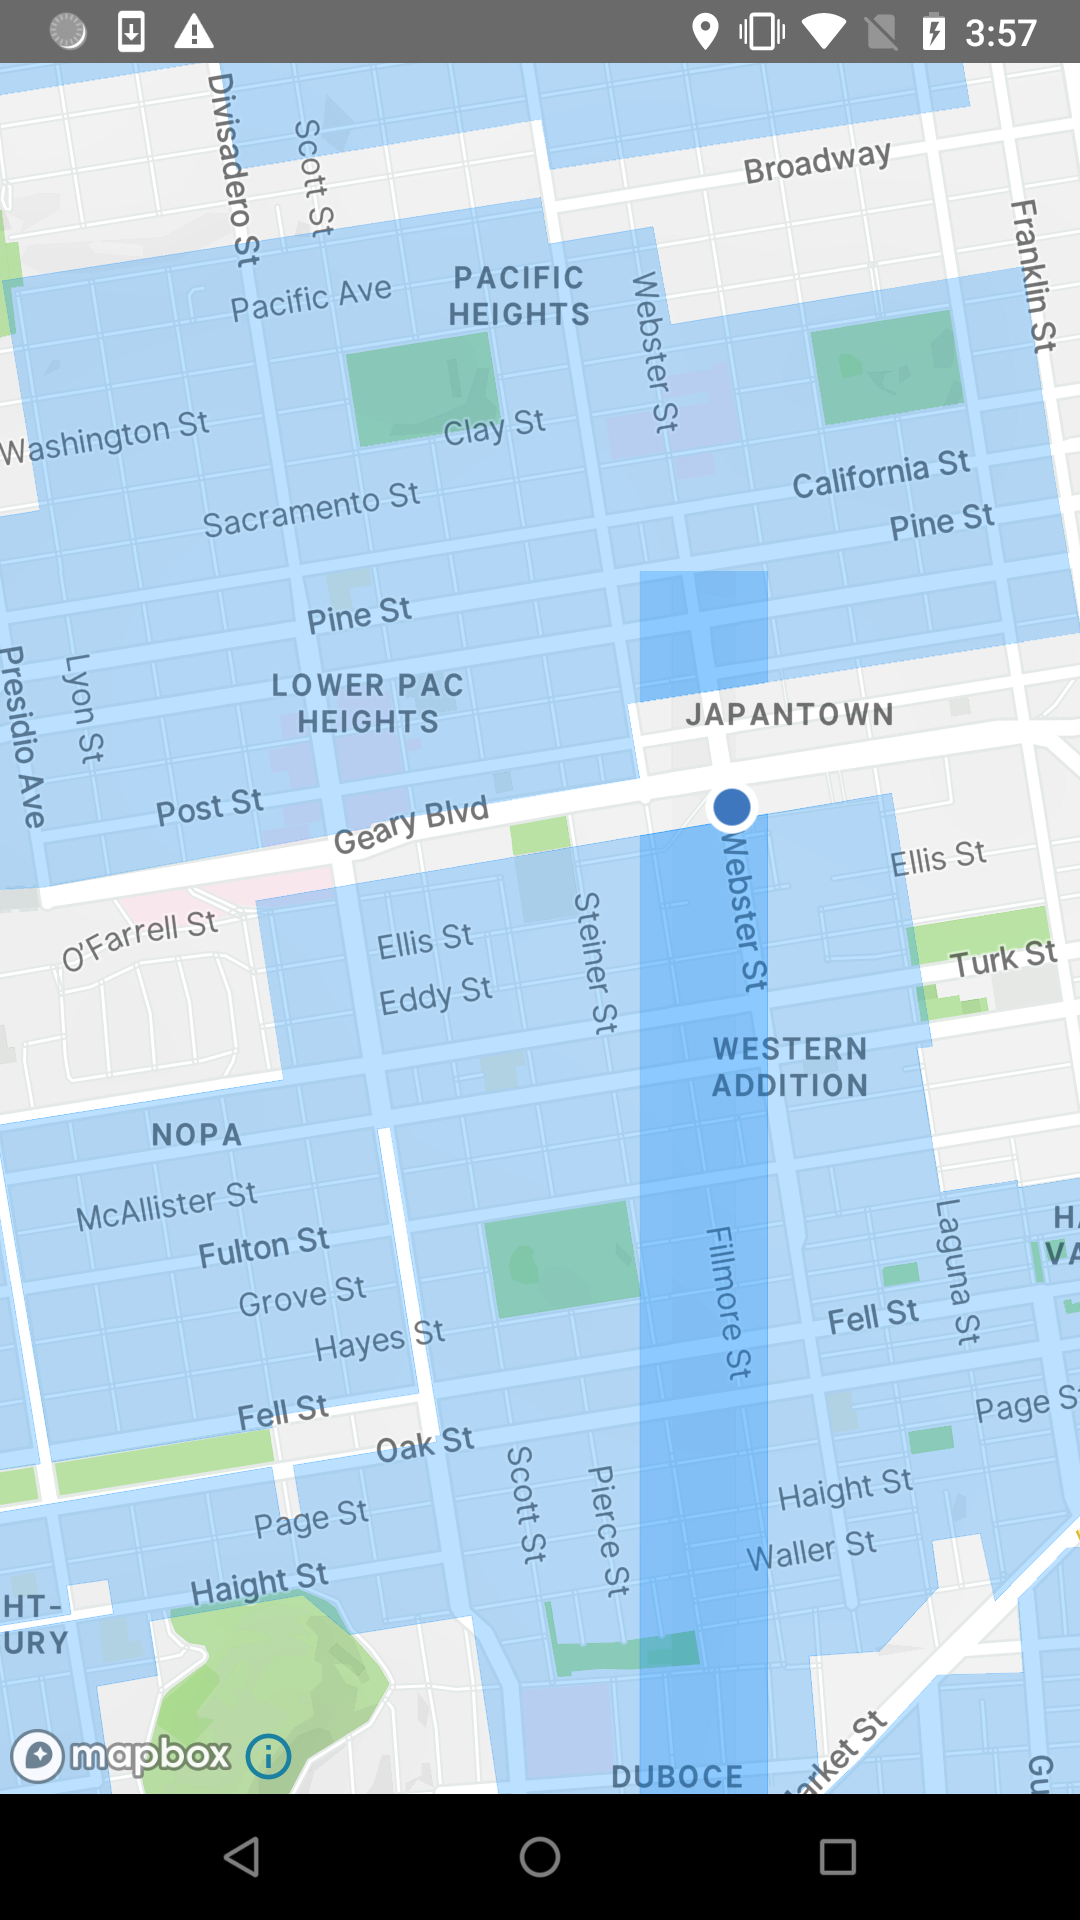 Overlapping polygons at tile buffer when location dot